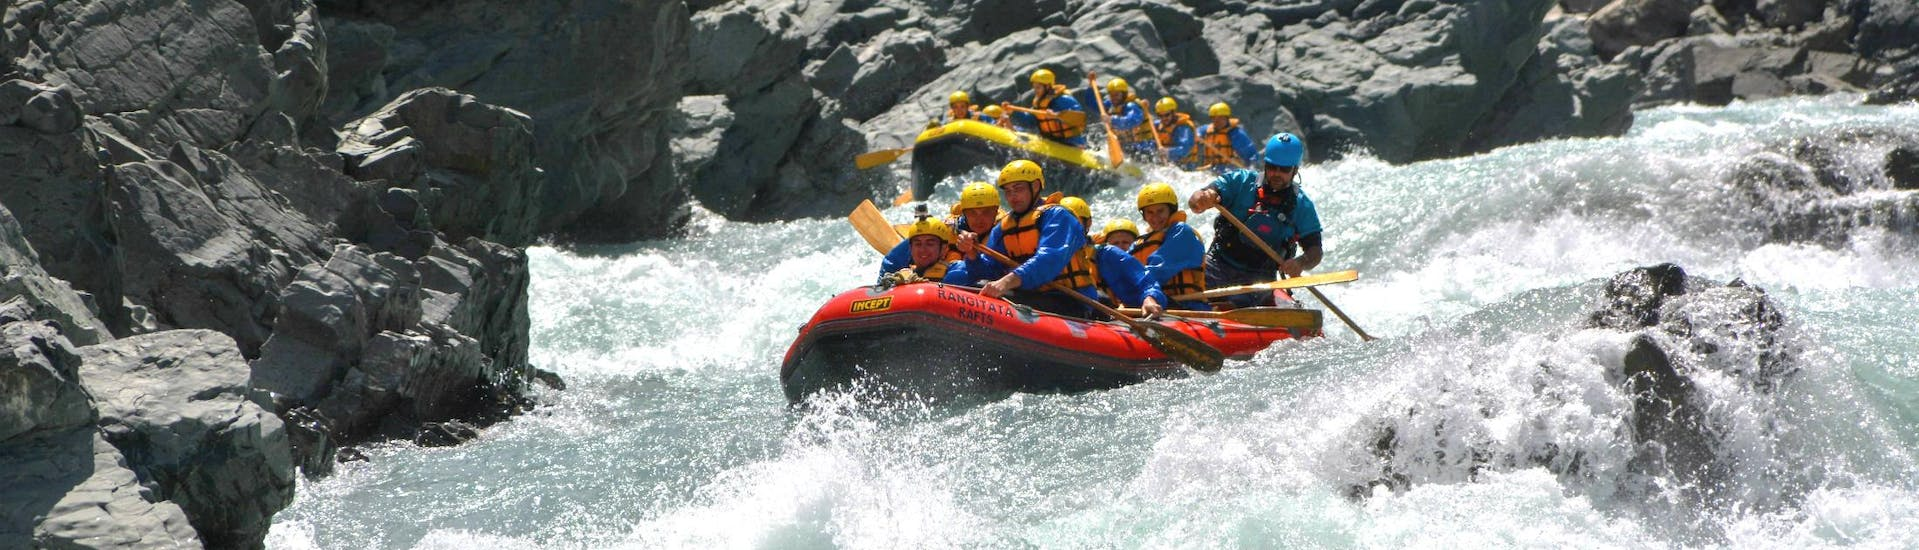 A group of rafters is paddling down a narrow section of the river during their Grade 5 Rafting Adventure in Rangitata Gorge organized by Rangitata Rafts.